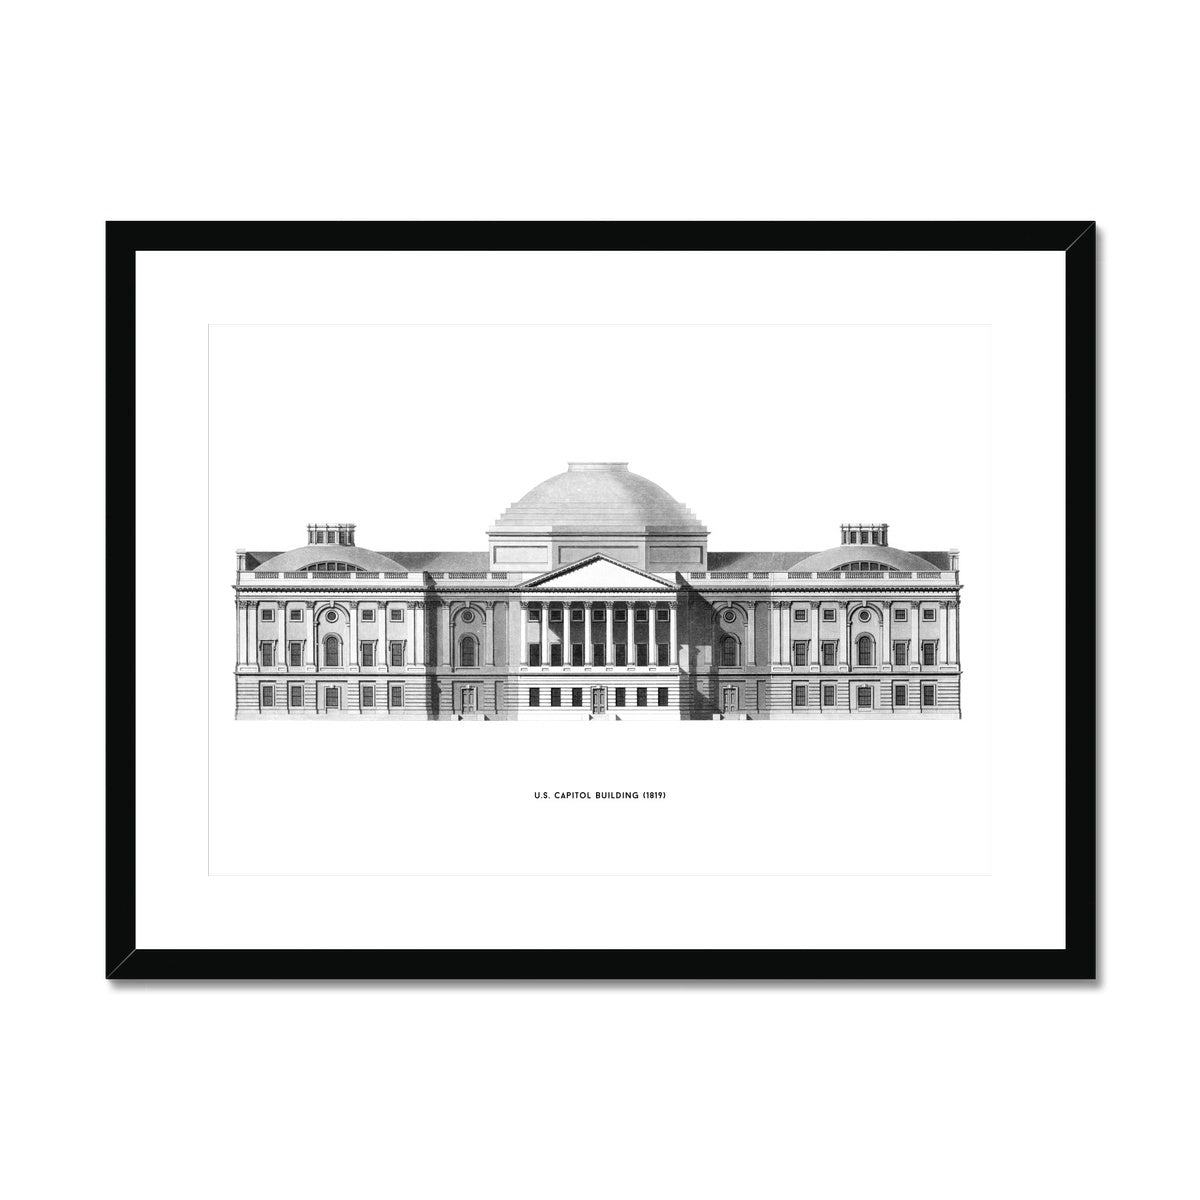 The U.S. Capitol Building - 1823 Elevation - White -  Framed & Mounted Print